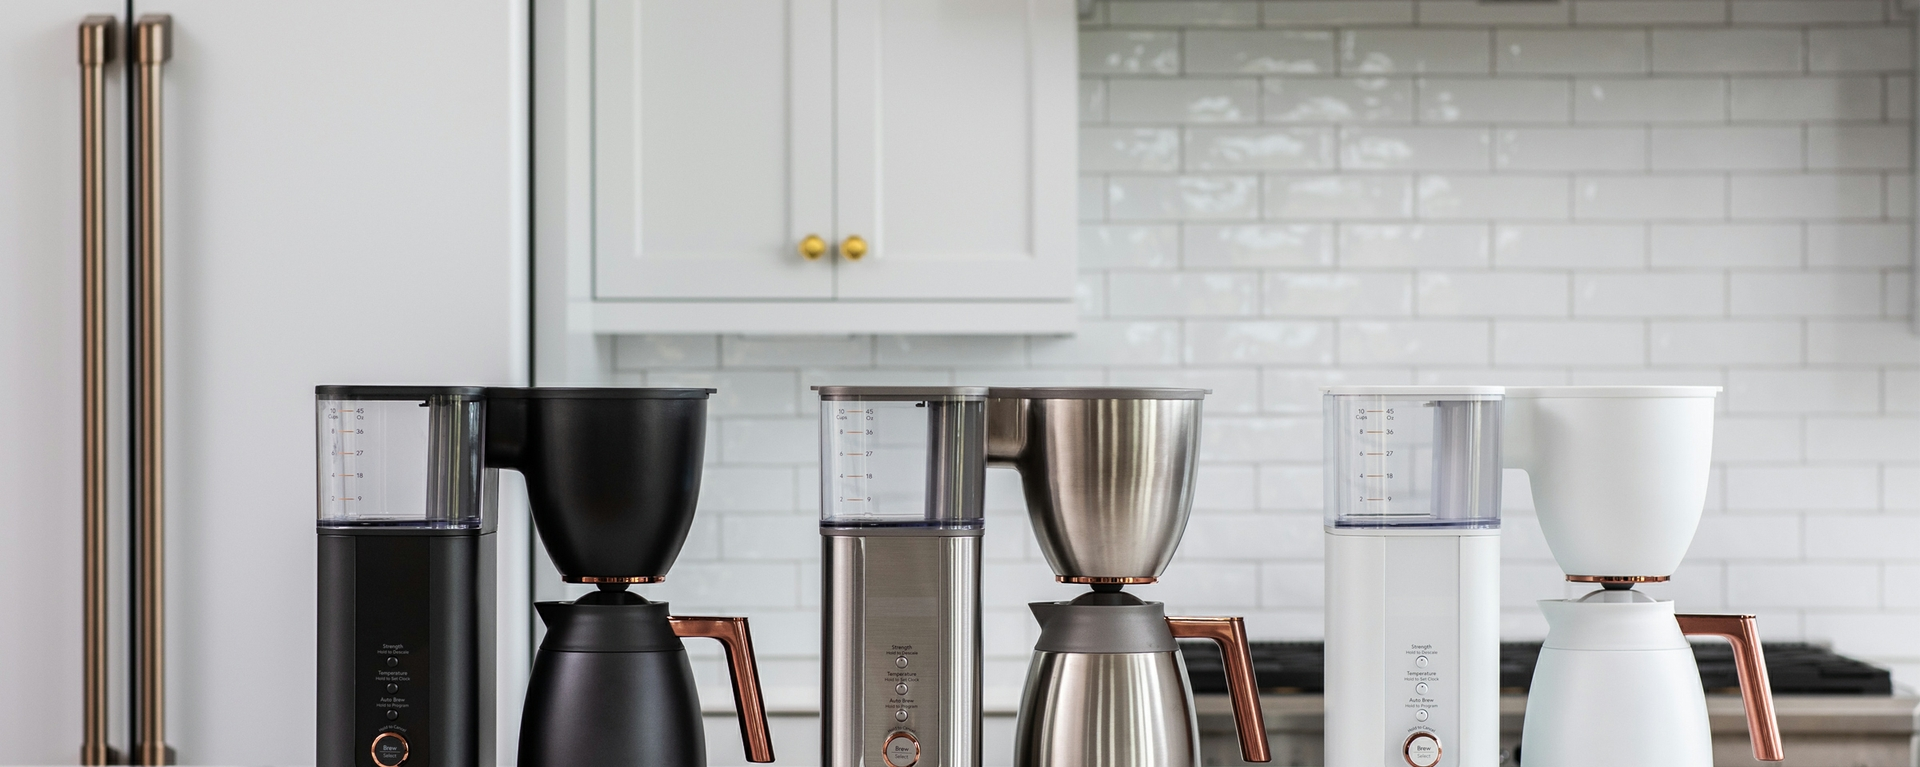 Line-Up of New, CAFÉ™ Specialty Drip Coffee Maker in Three Finishes